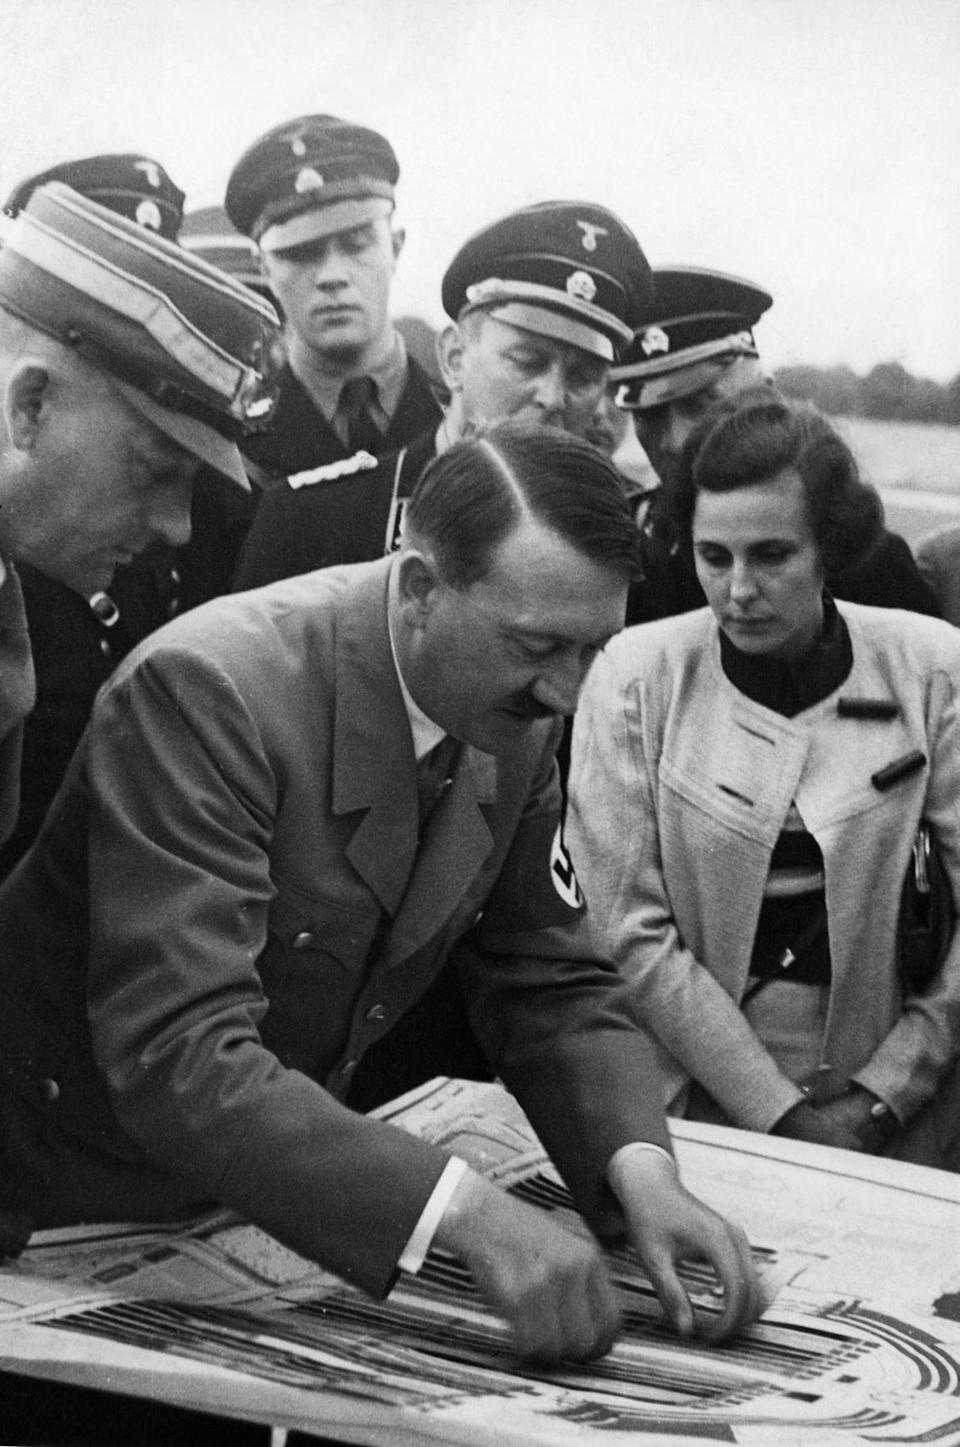 """<div class=""""inline-image__caption""""><p>Adolf Hitler checking plans for the forthcoming parades on the terrain of the Nuremberg rally and Leni Riefenstahl, at right, who was commissioned to shoot the official film about the rally, on Aug 20, 1934.</p></div> <div class=""""inline-image__credit"""">Heinrich Hoffmann/ullstein bild via Getty</div>"""